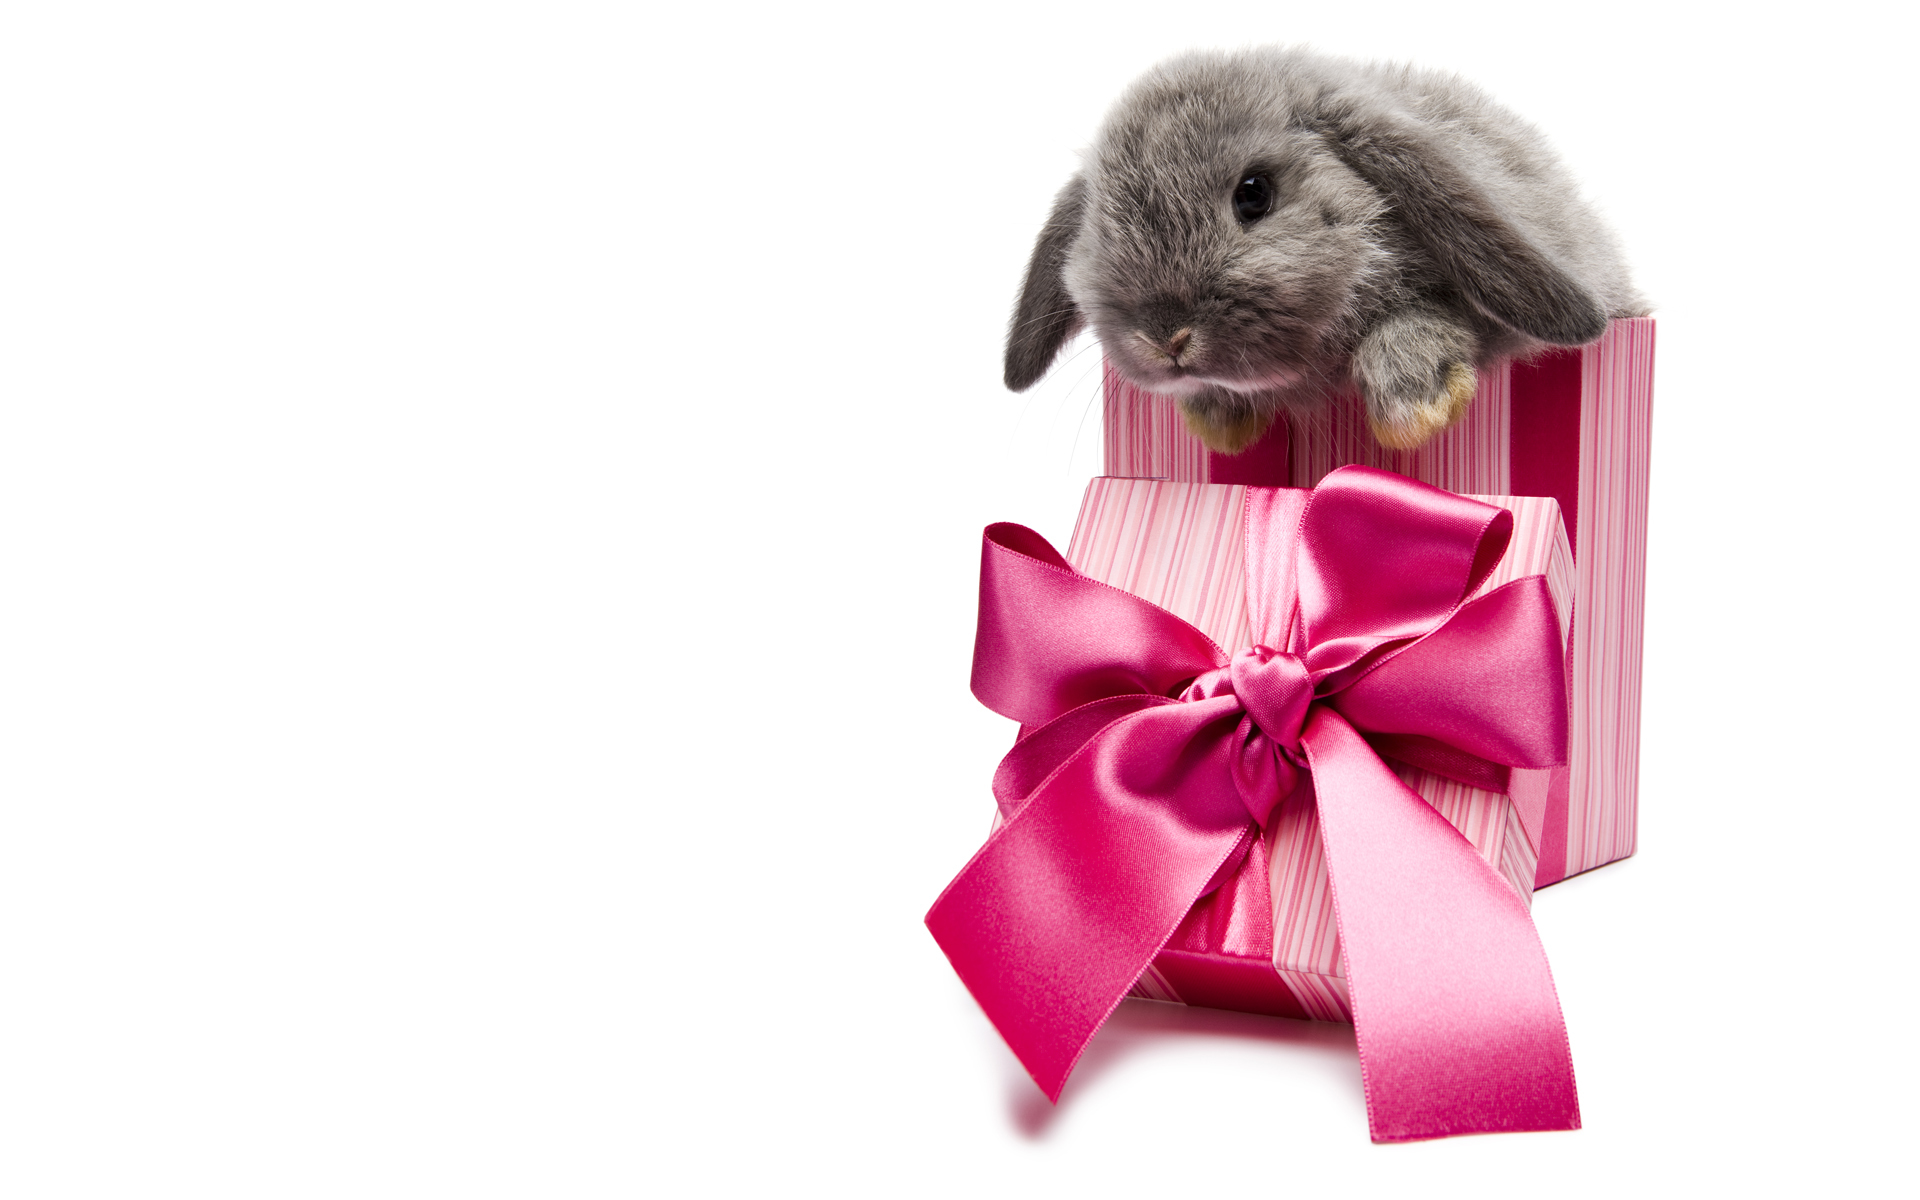 11314 Screensavers and Wallpapers Rabbits for phone. Download Animals, Holidays, Rodents, Rabbits pictures for free